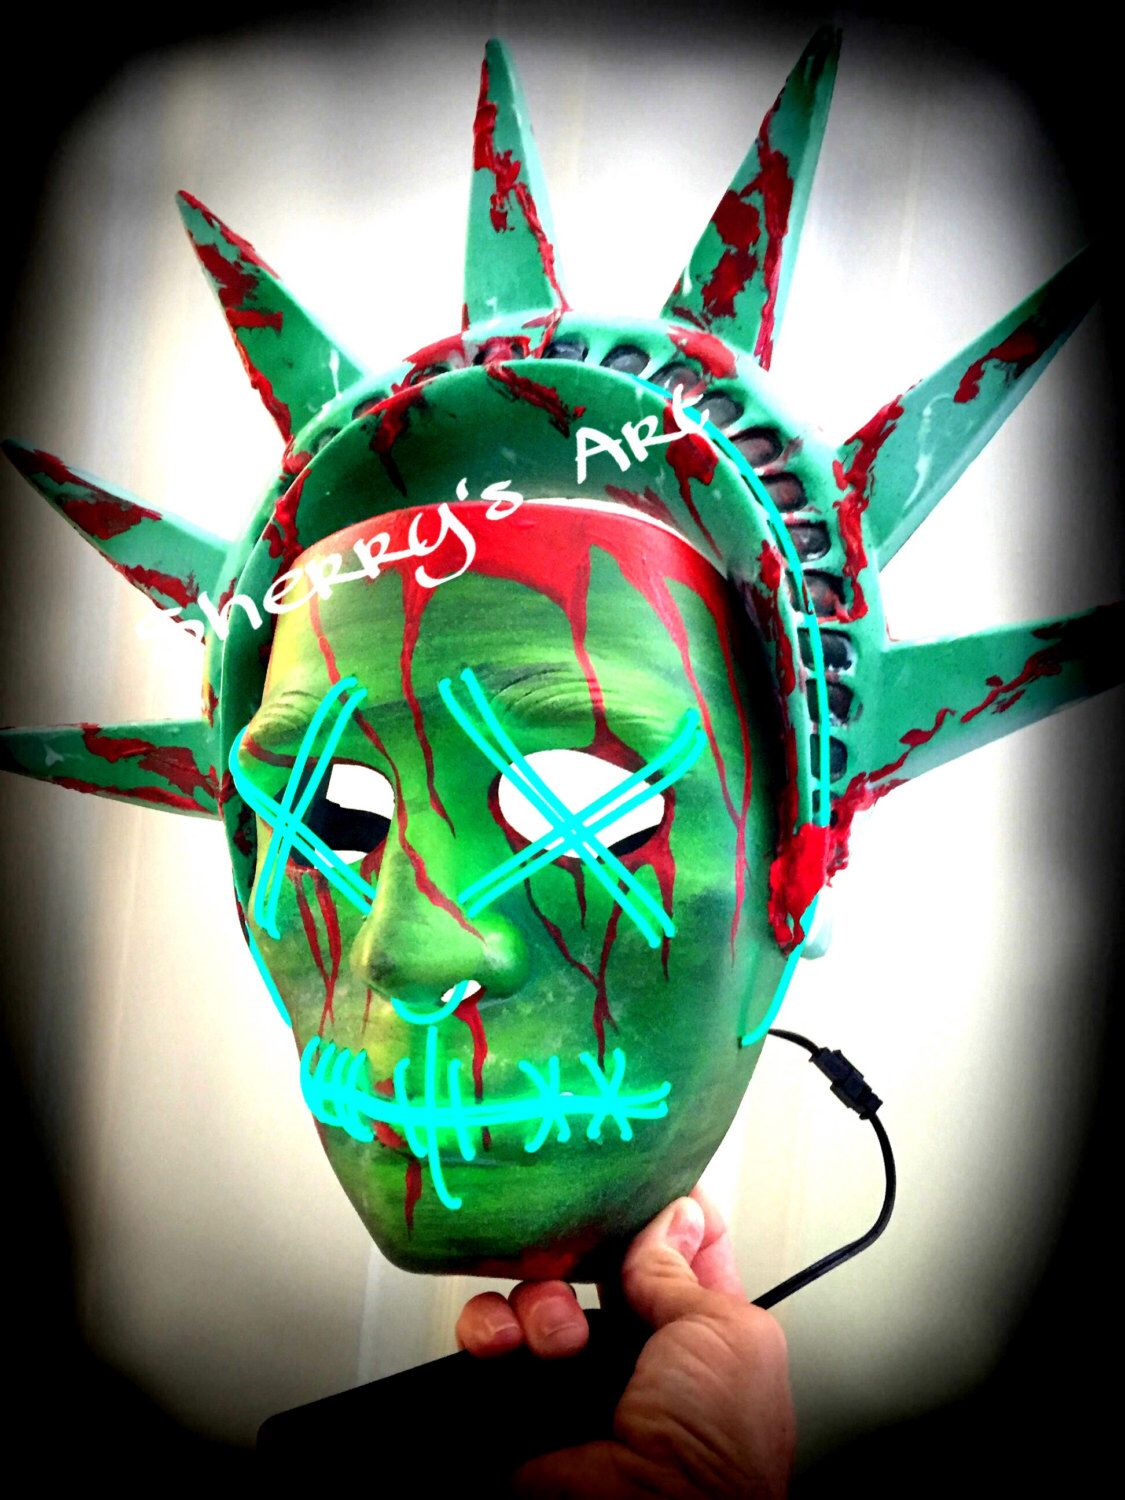 a personal favorite from my etsy shop httpswwwetsycomlisting451974796purge 3 mask the purge lady liberty 3